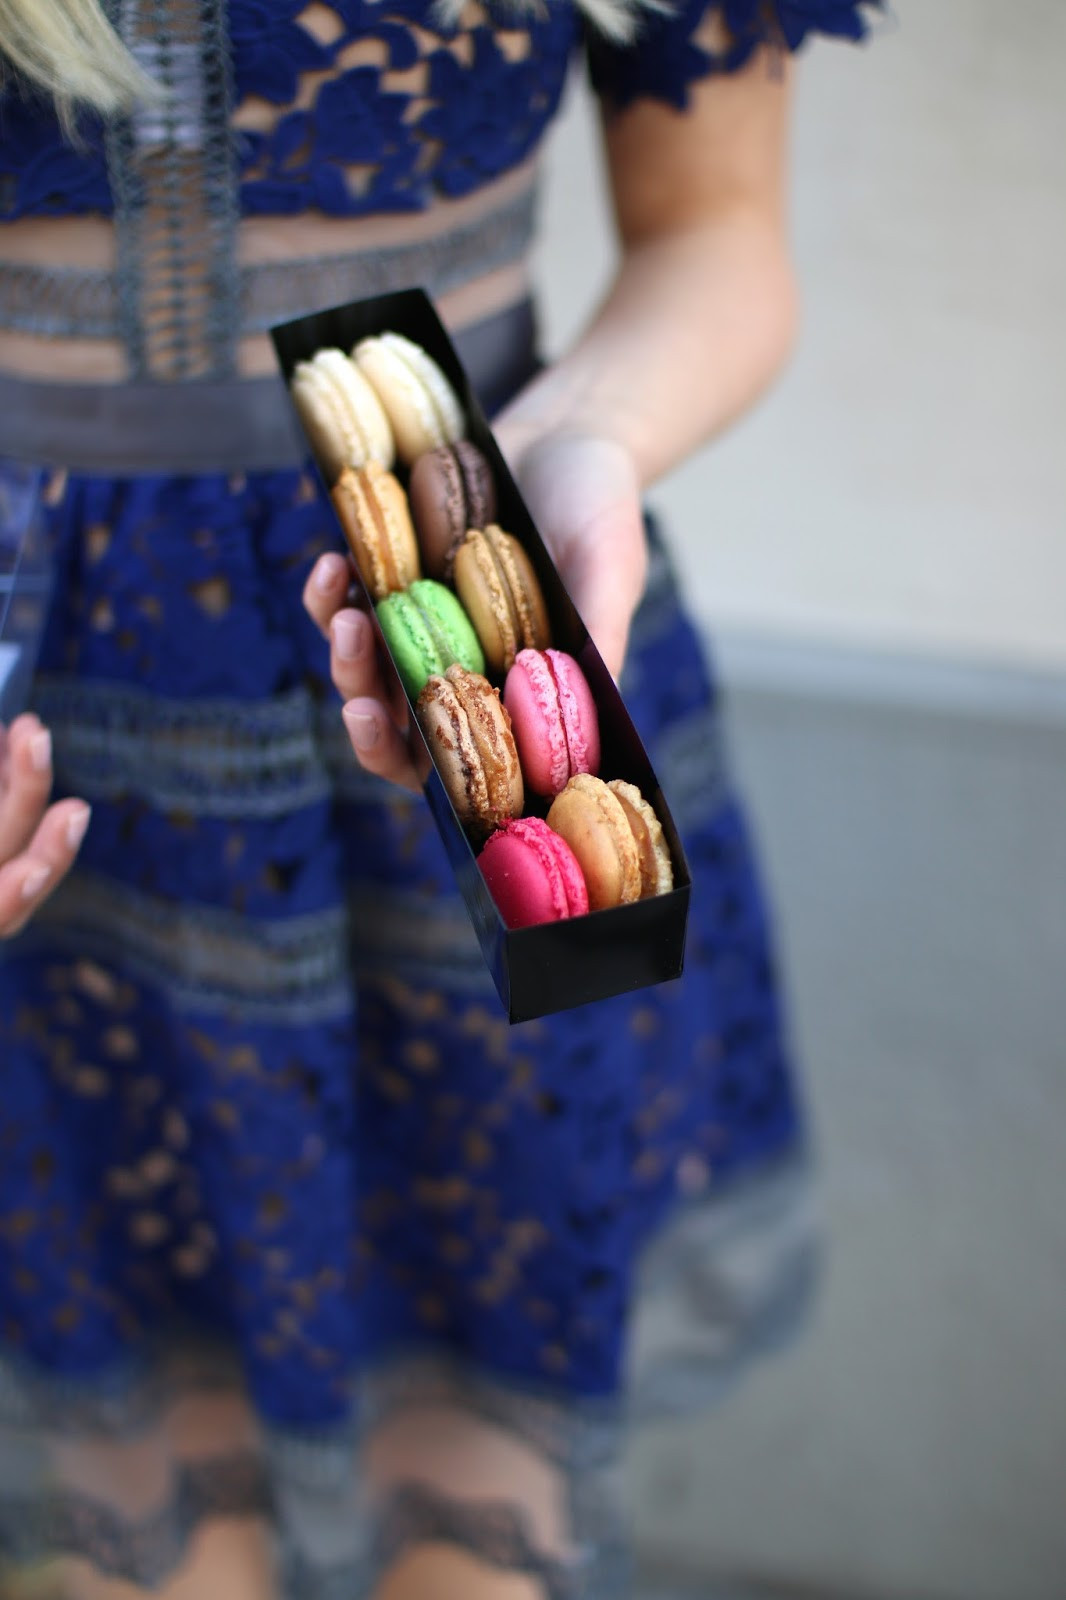 pretty pink, green and yellow macaroons in paris